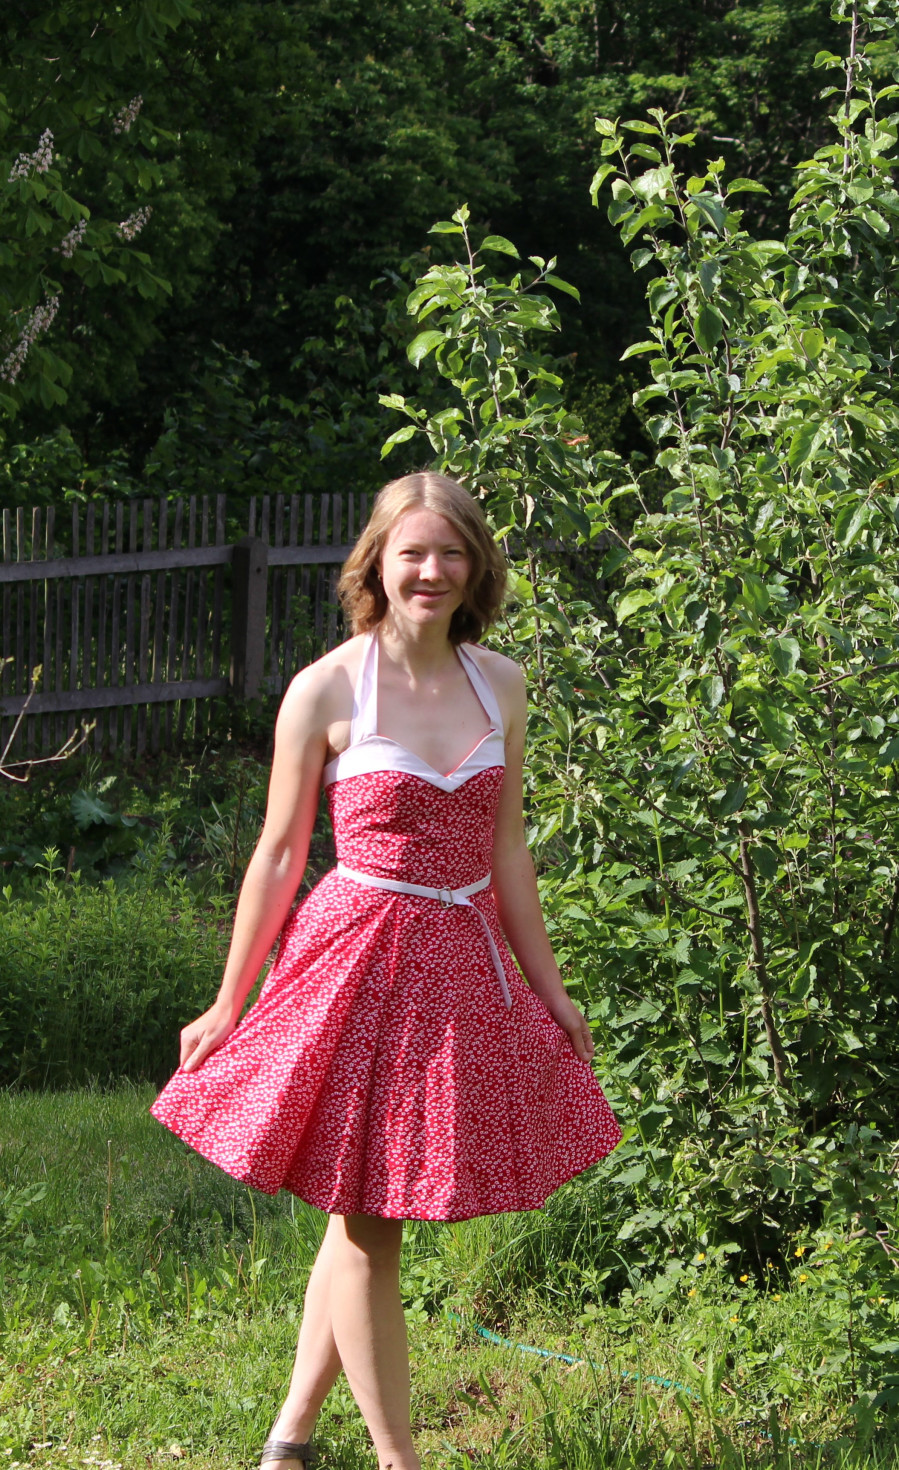 burda style Nutzerkreation Susi_96 Sommerkleid in rot